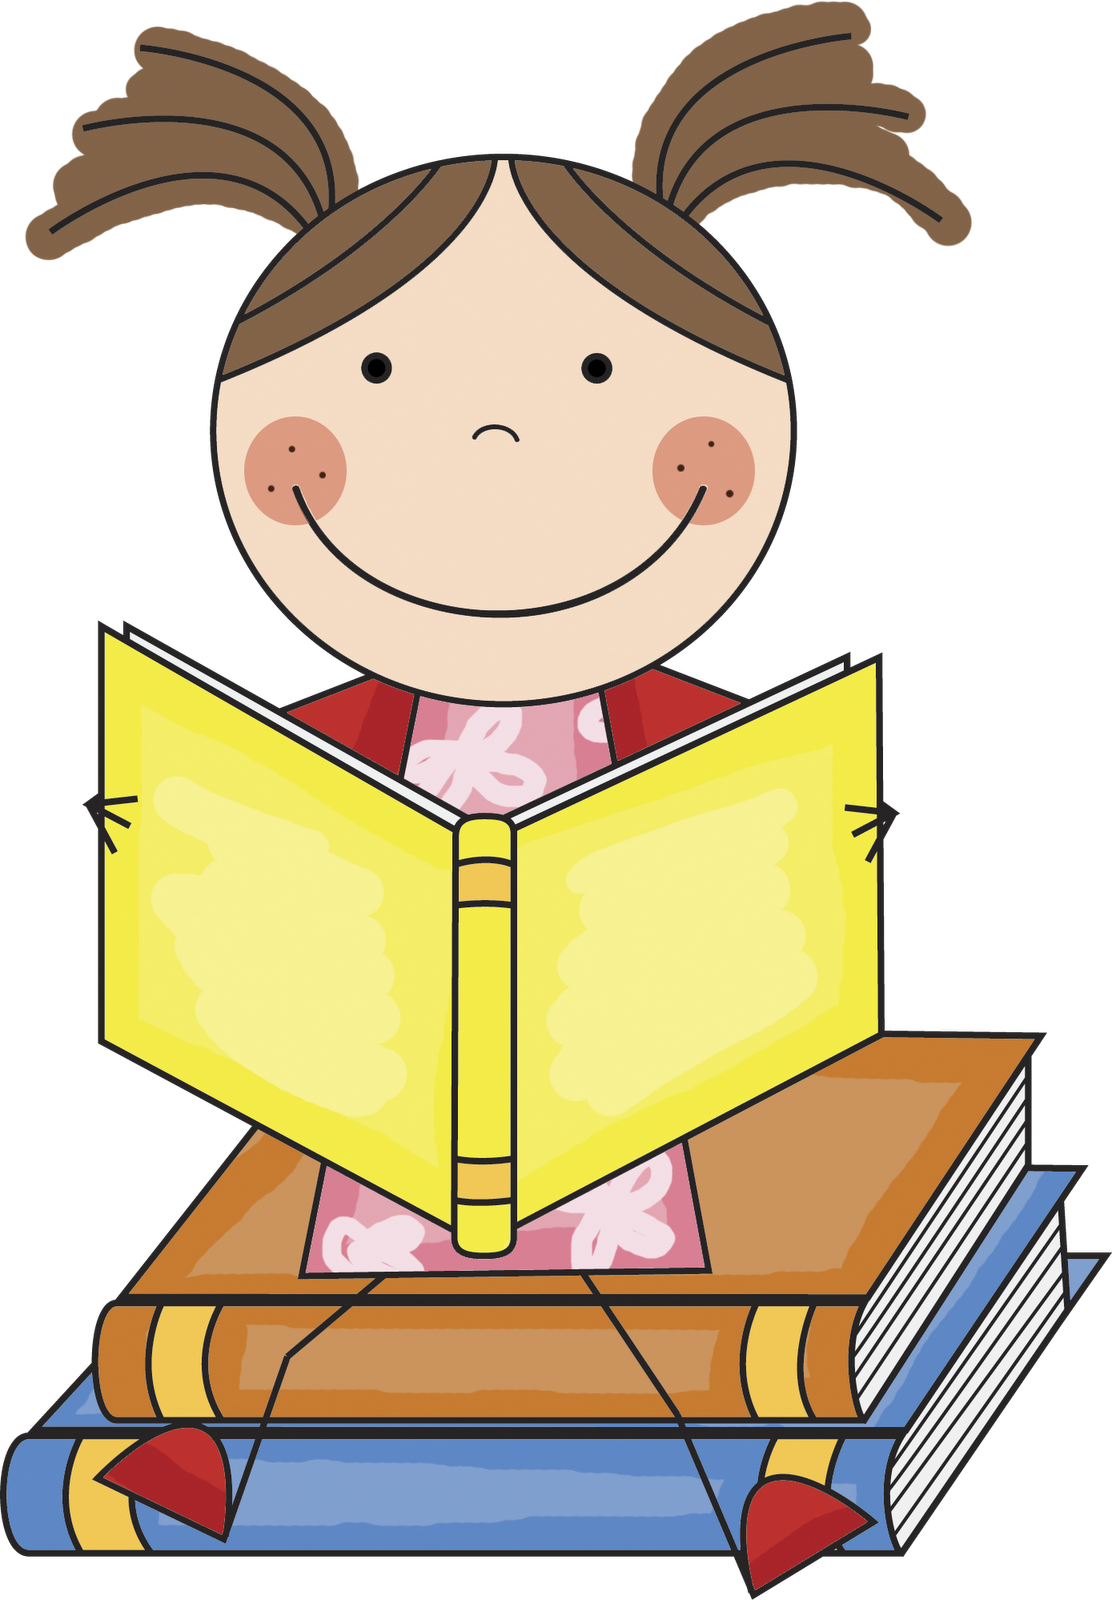 Free Children Reading Books Images, Download Free Clip Art